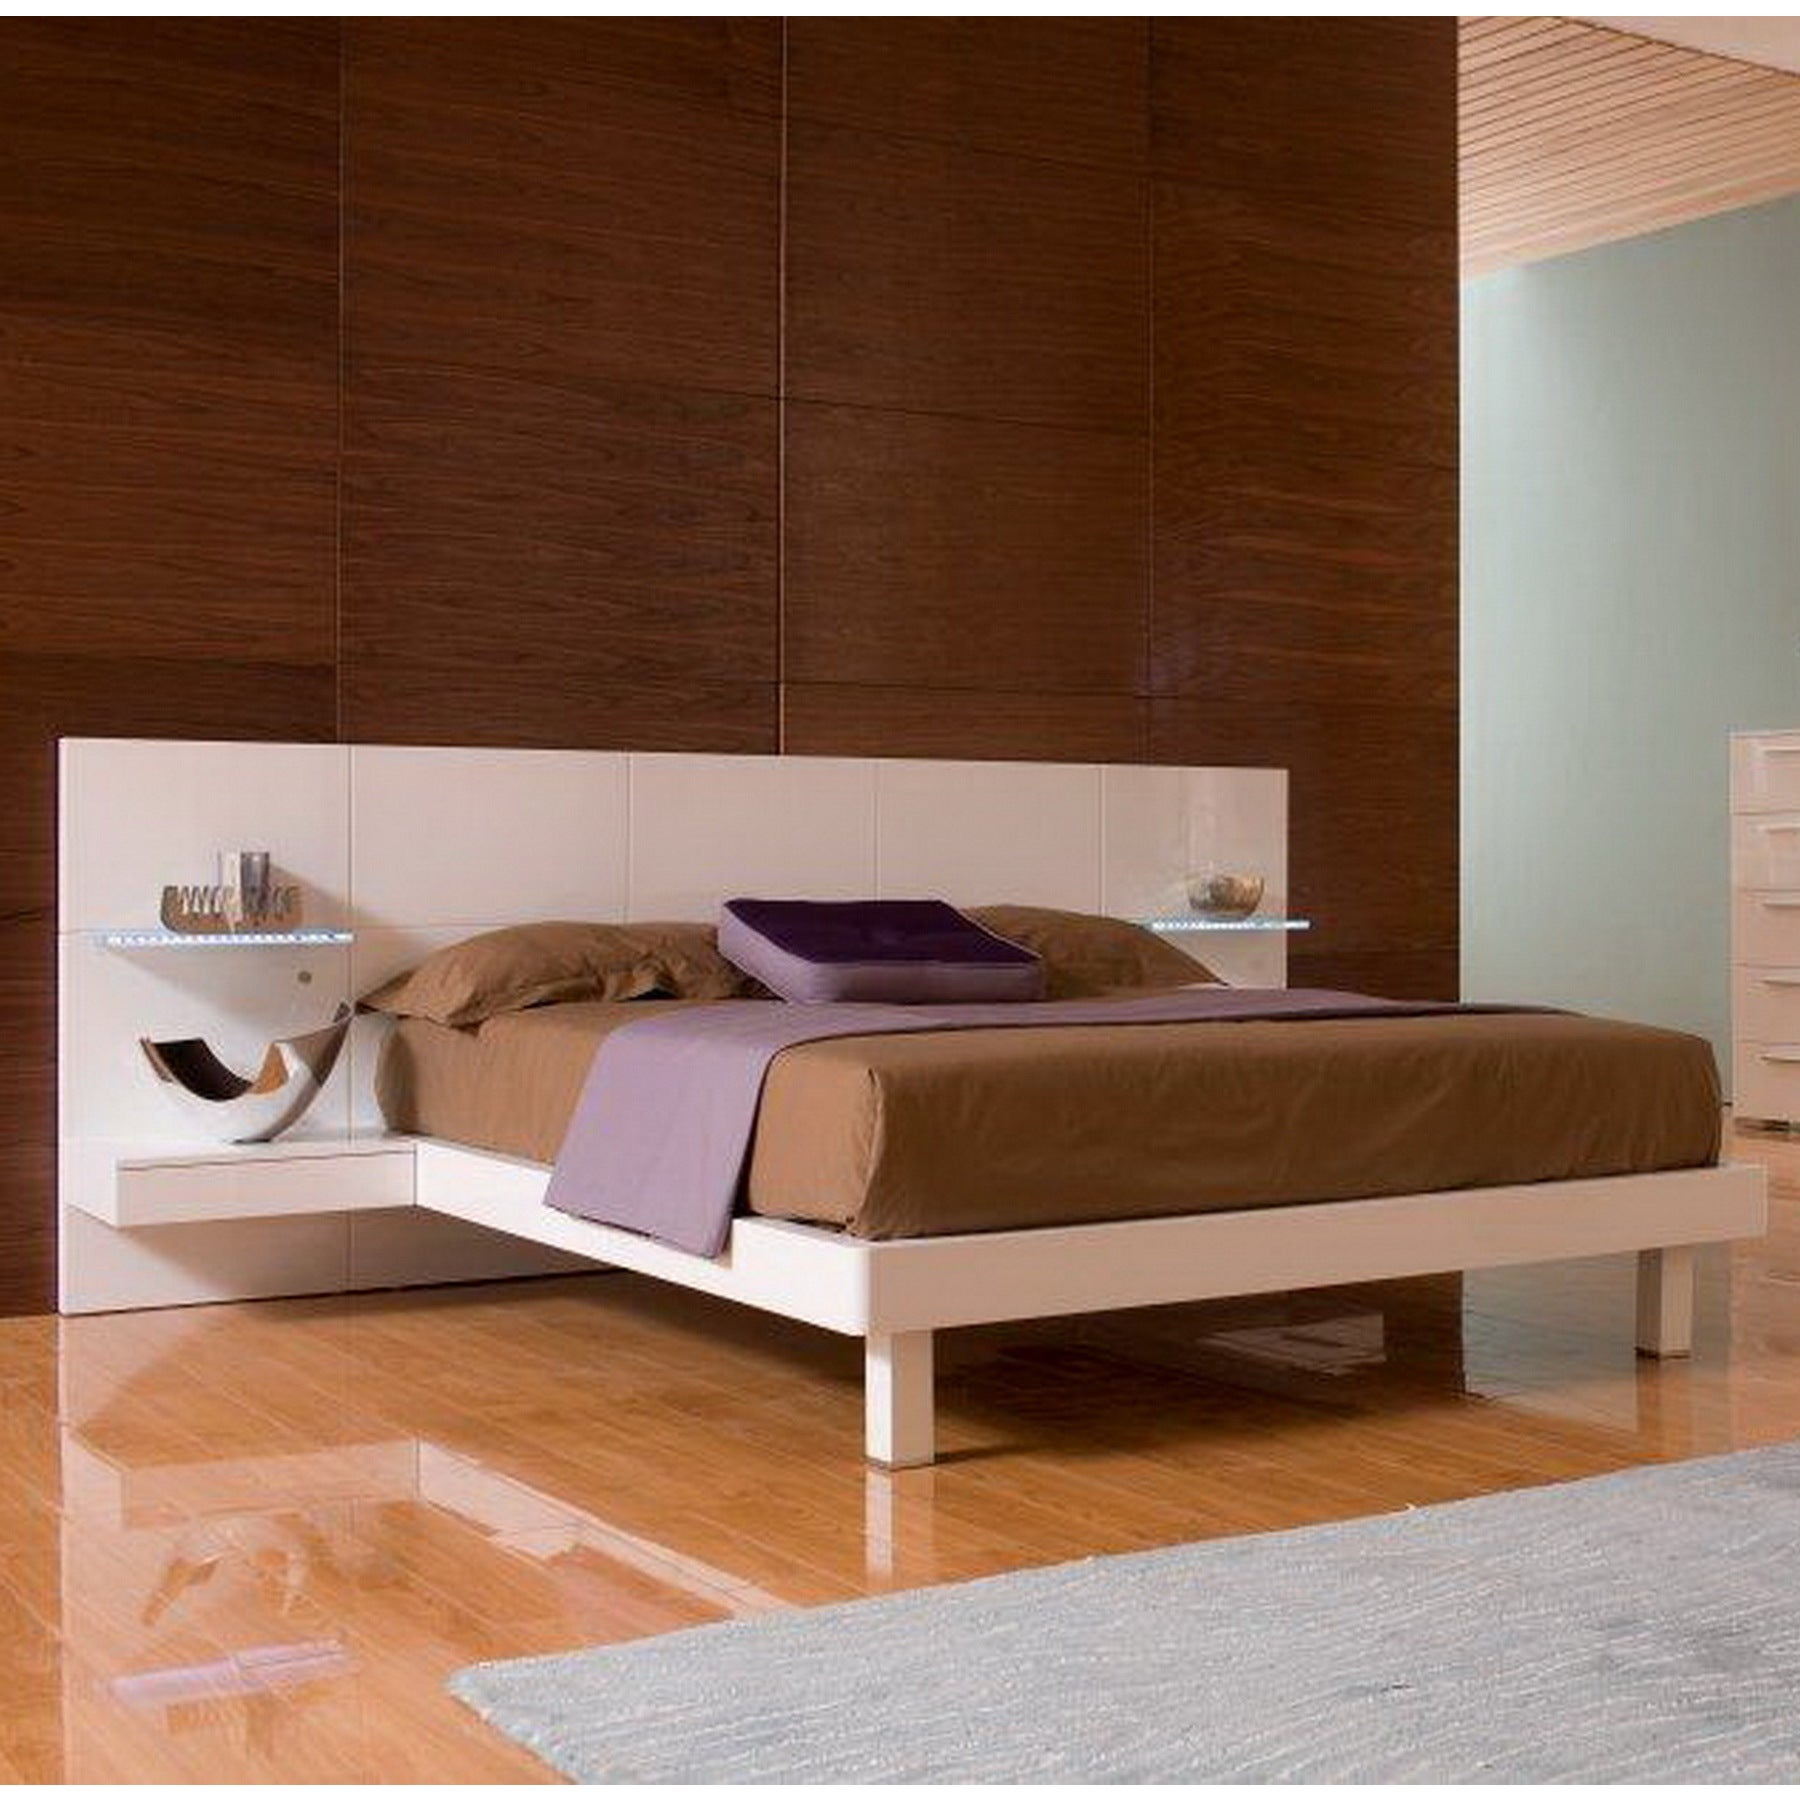 Tuscany White Bed With Built In